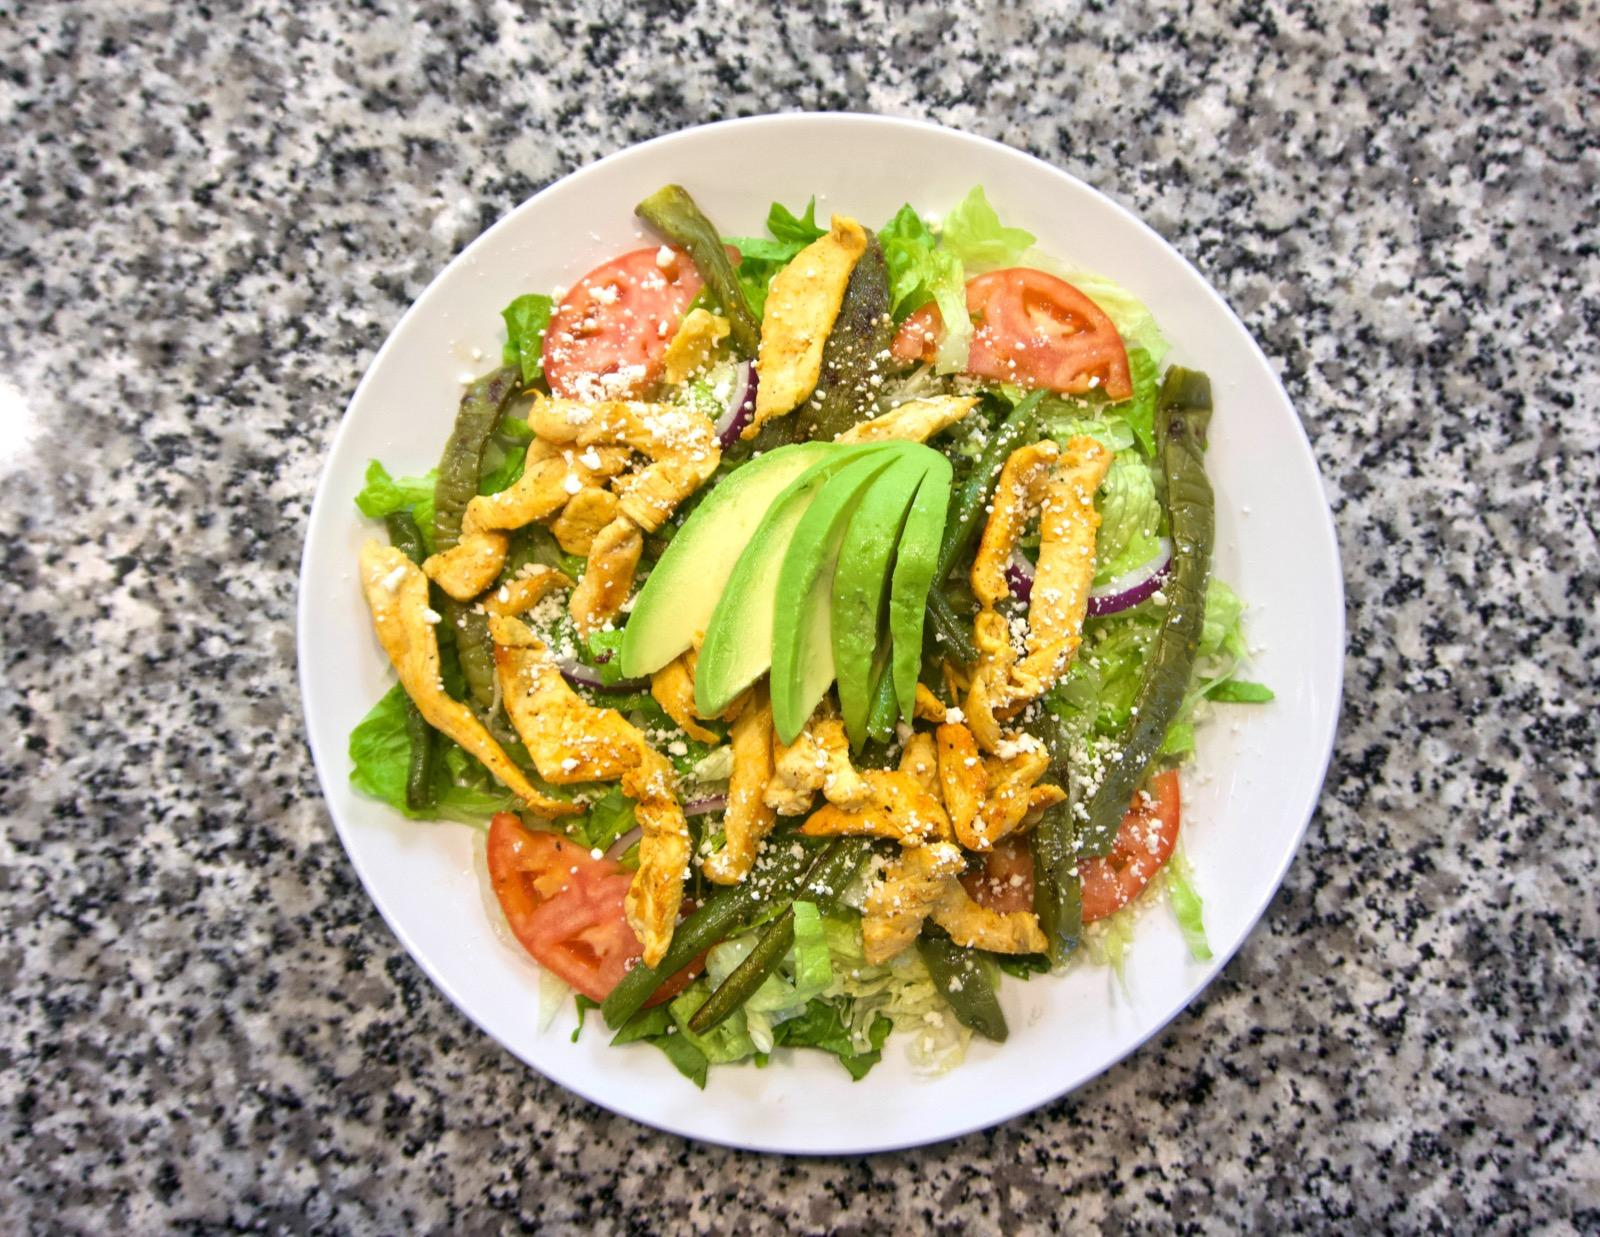 Veracruz salad: Spring mix salad and romaine lettuce with avocado, tomatoes, red onions, grilled shrimp, and cactus / Image: Brian Planalp // Published: 1.29.18